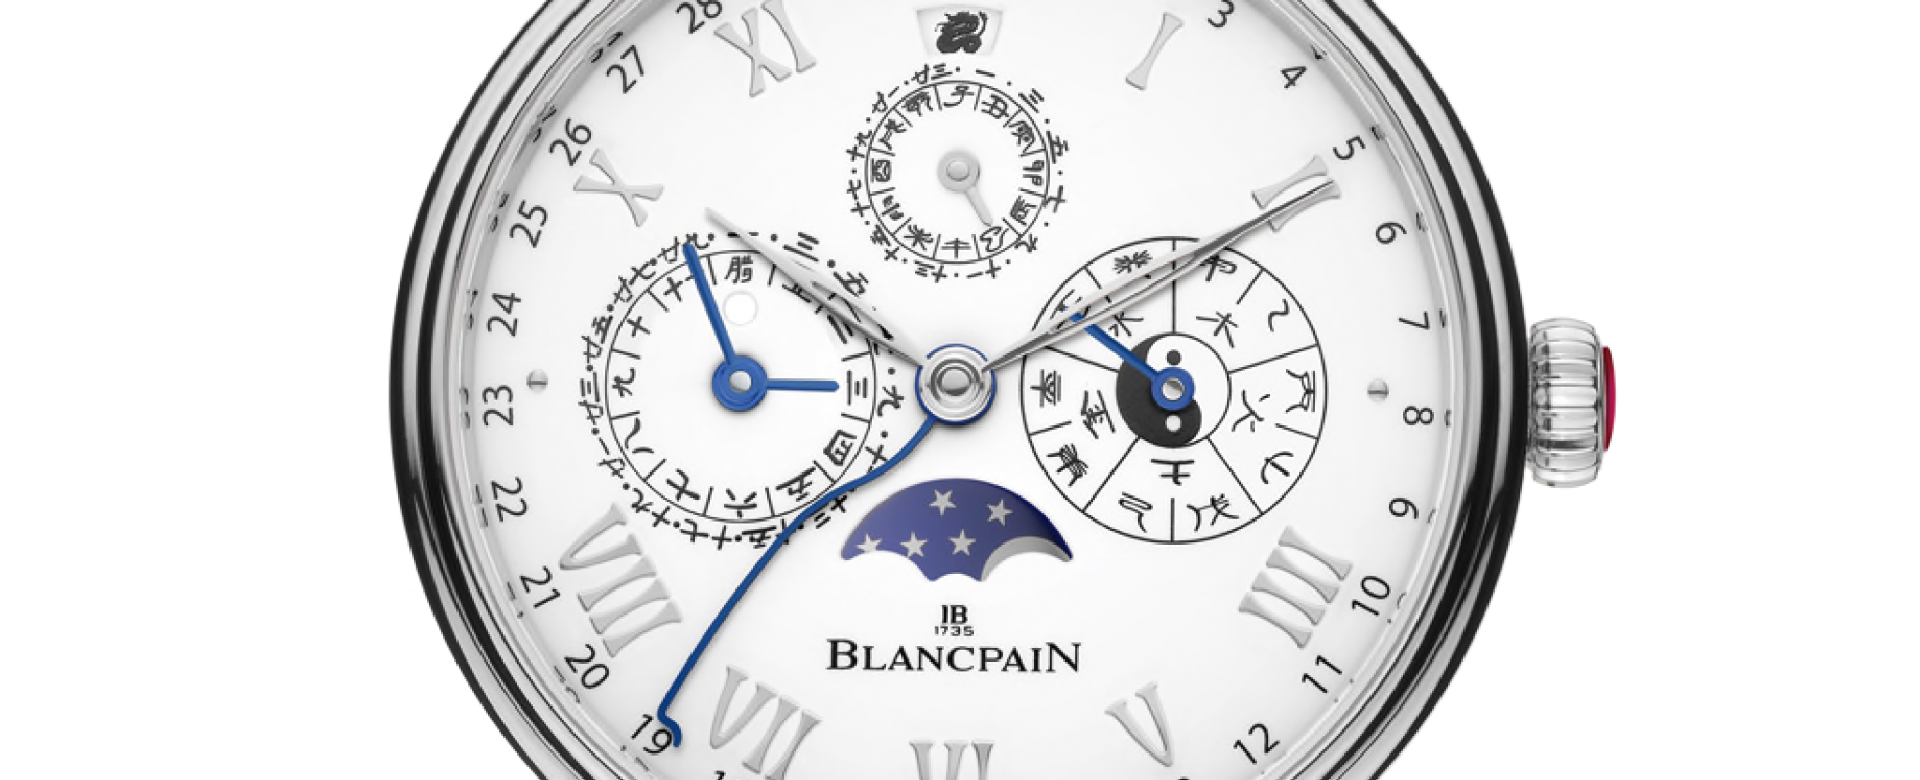 Huber Uhren - Blancpain Watch